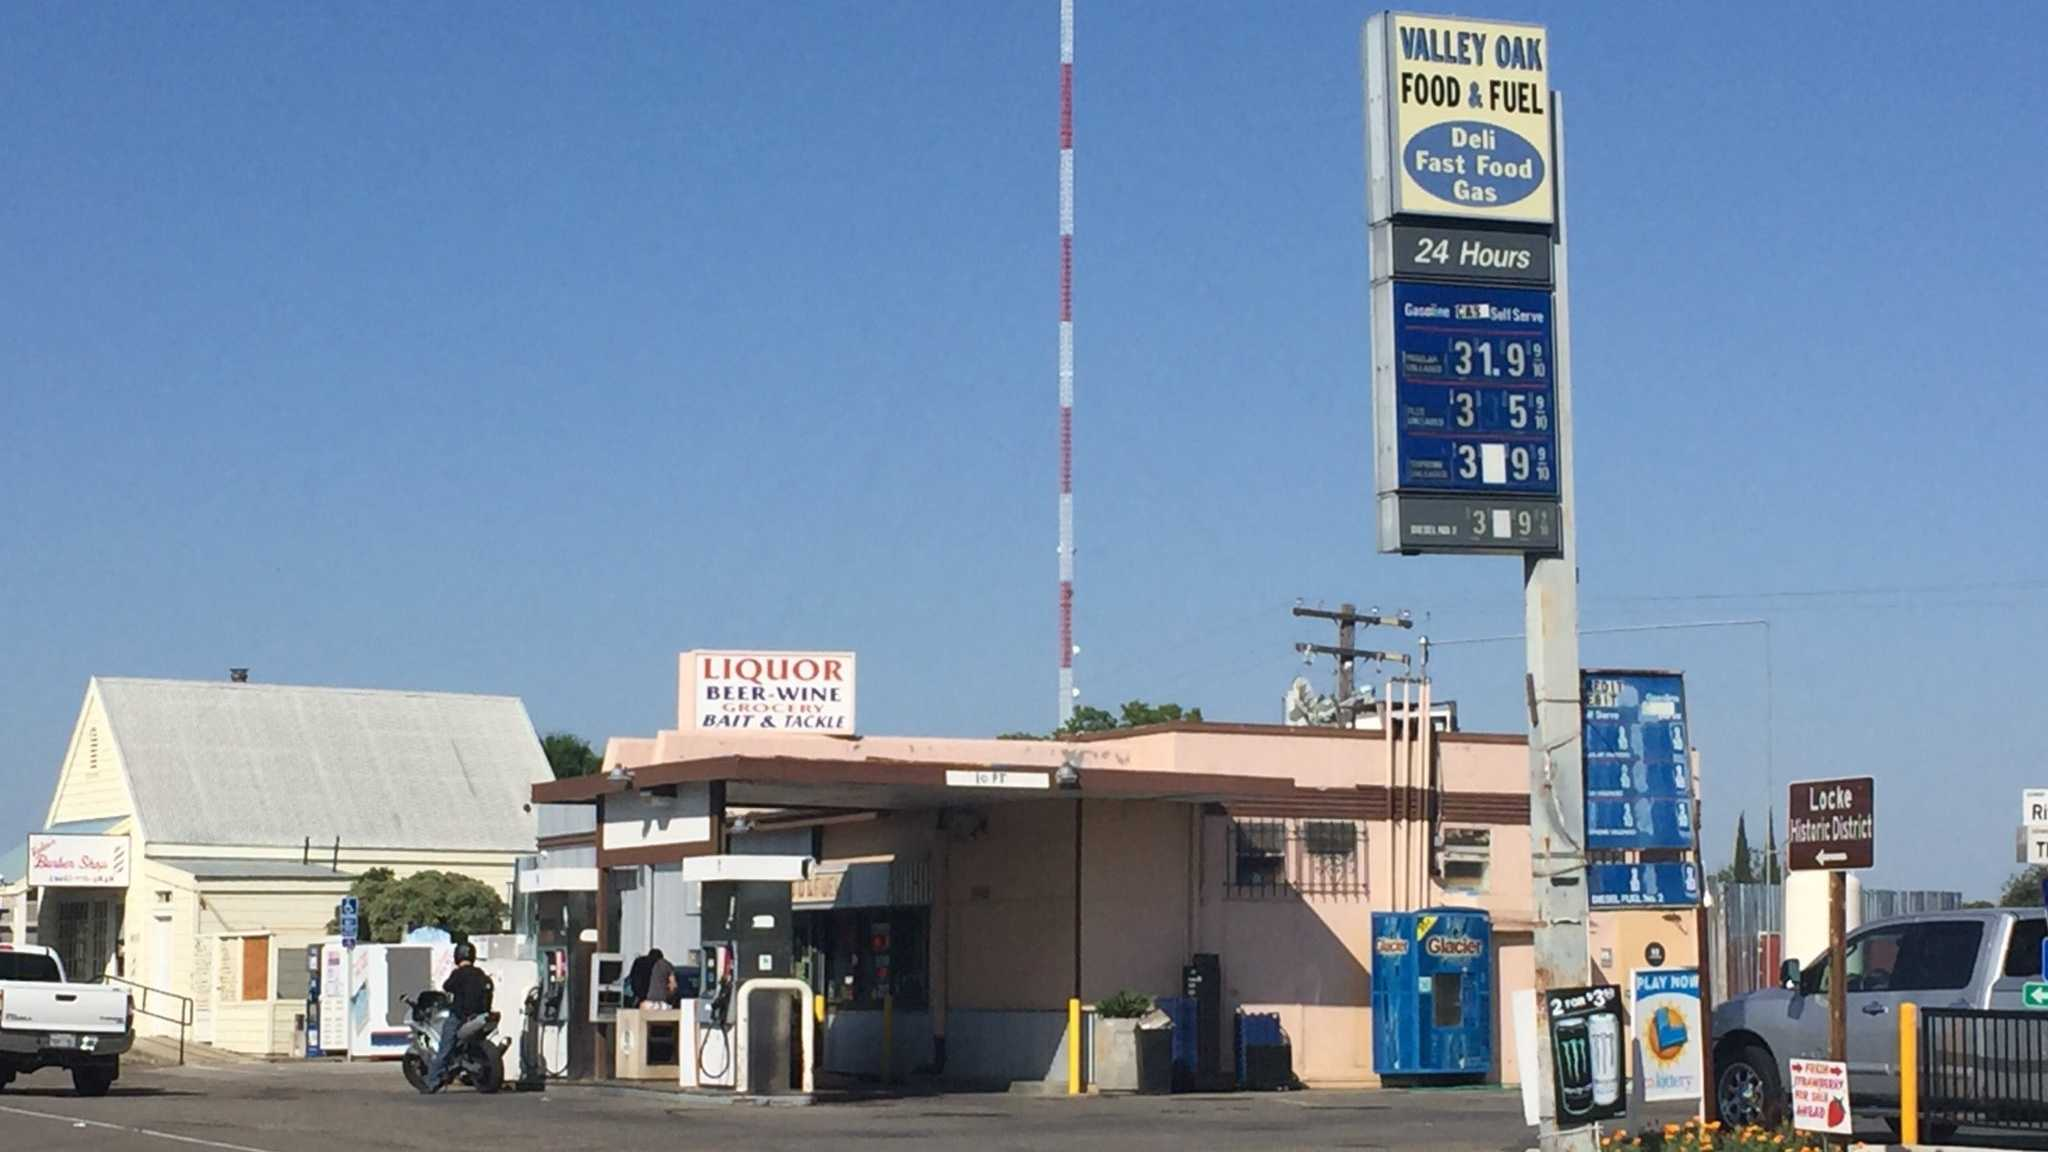 Several cases of botulism, a rare food poisoning illness, were linked to the Valley Oak Food and Fuel gas station in Walnut Grove, the Sacramento County Public Health Department said.